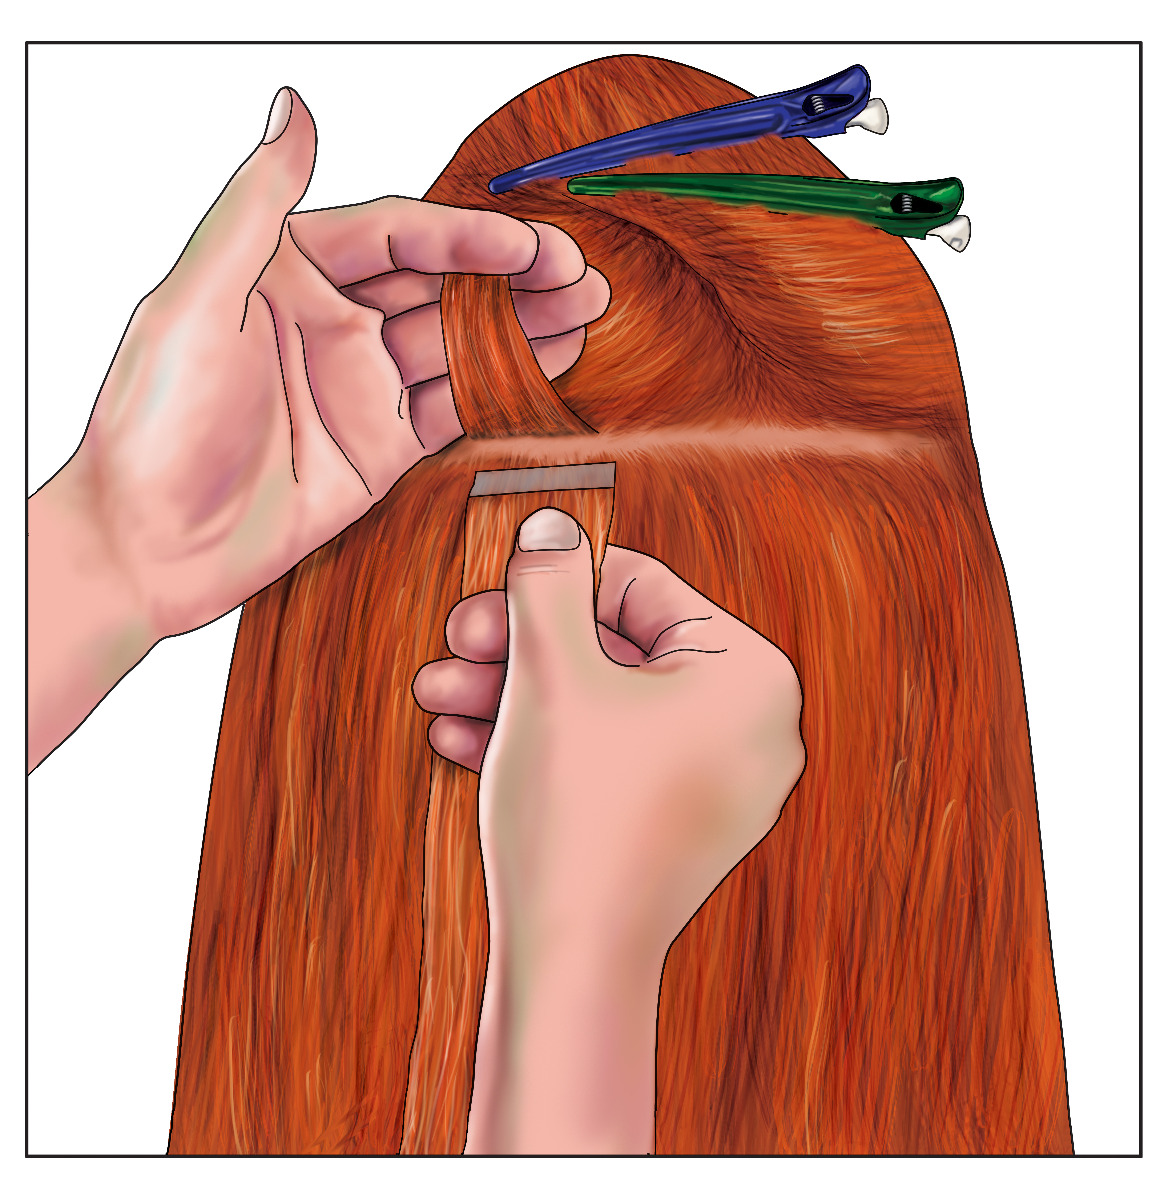 Tape_in_extensions_Pic4